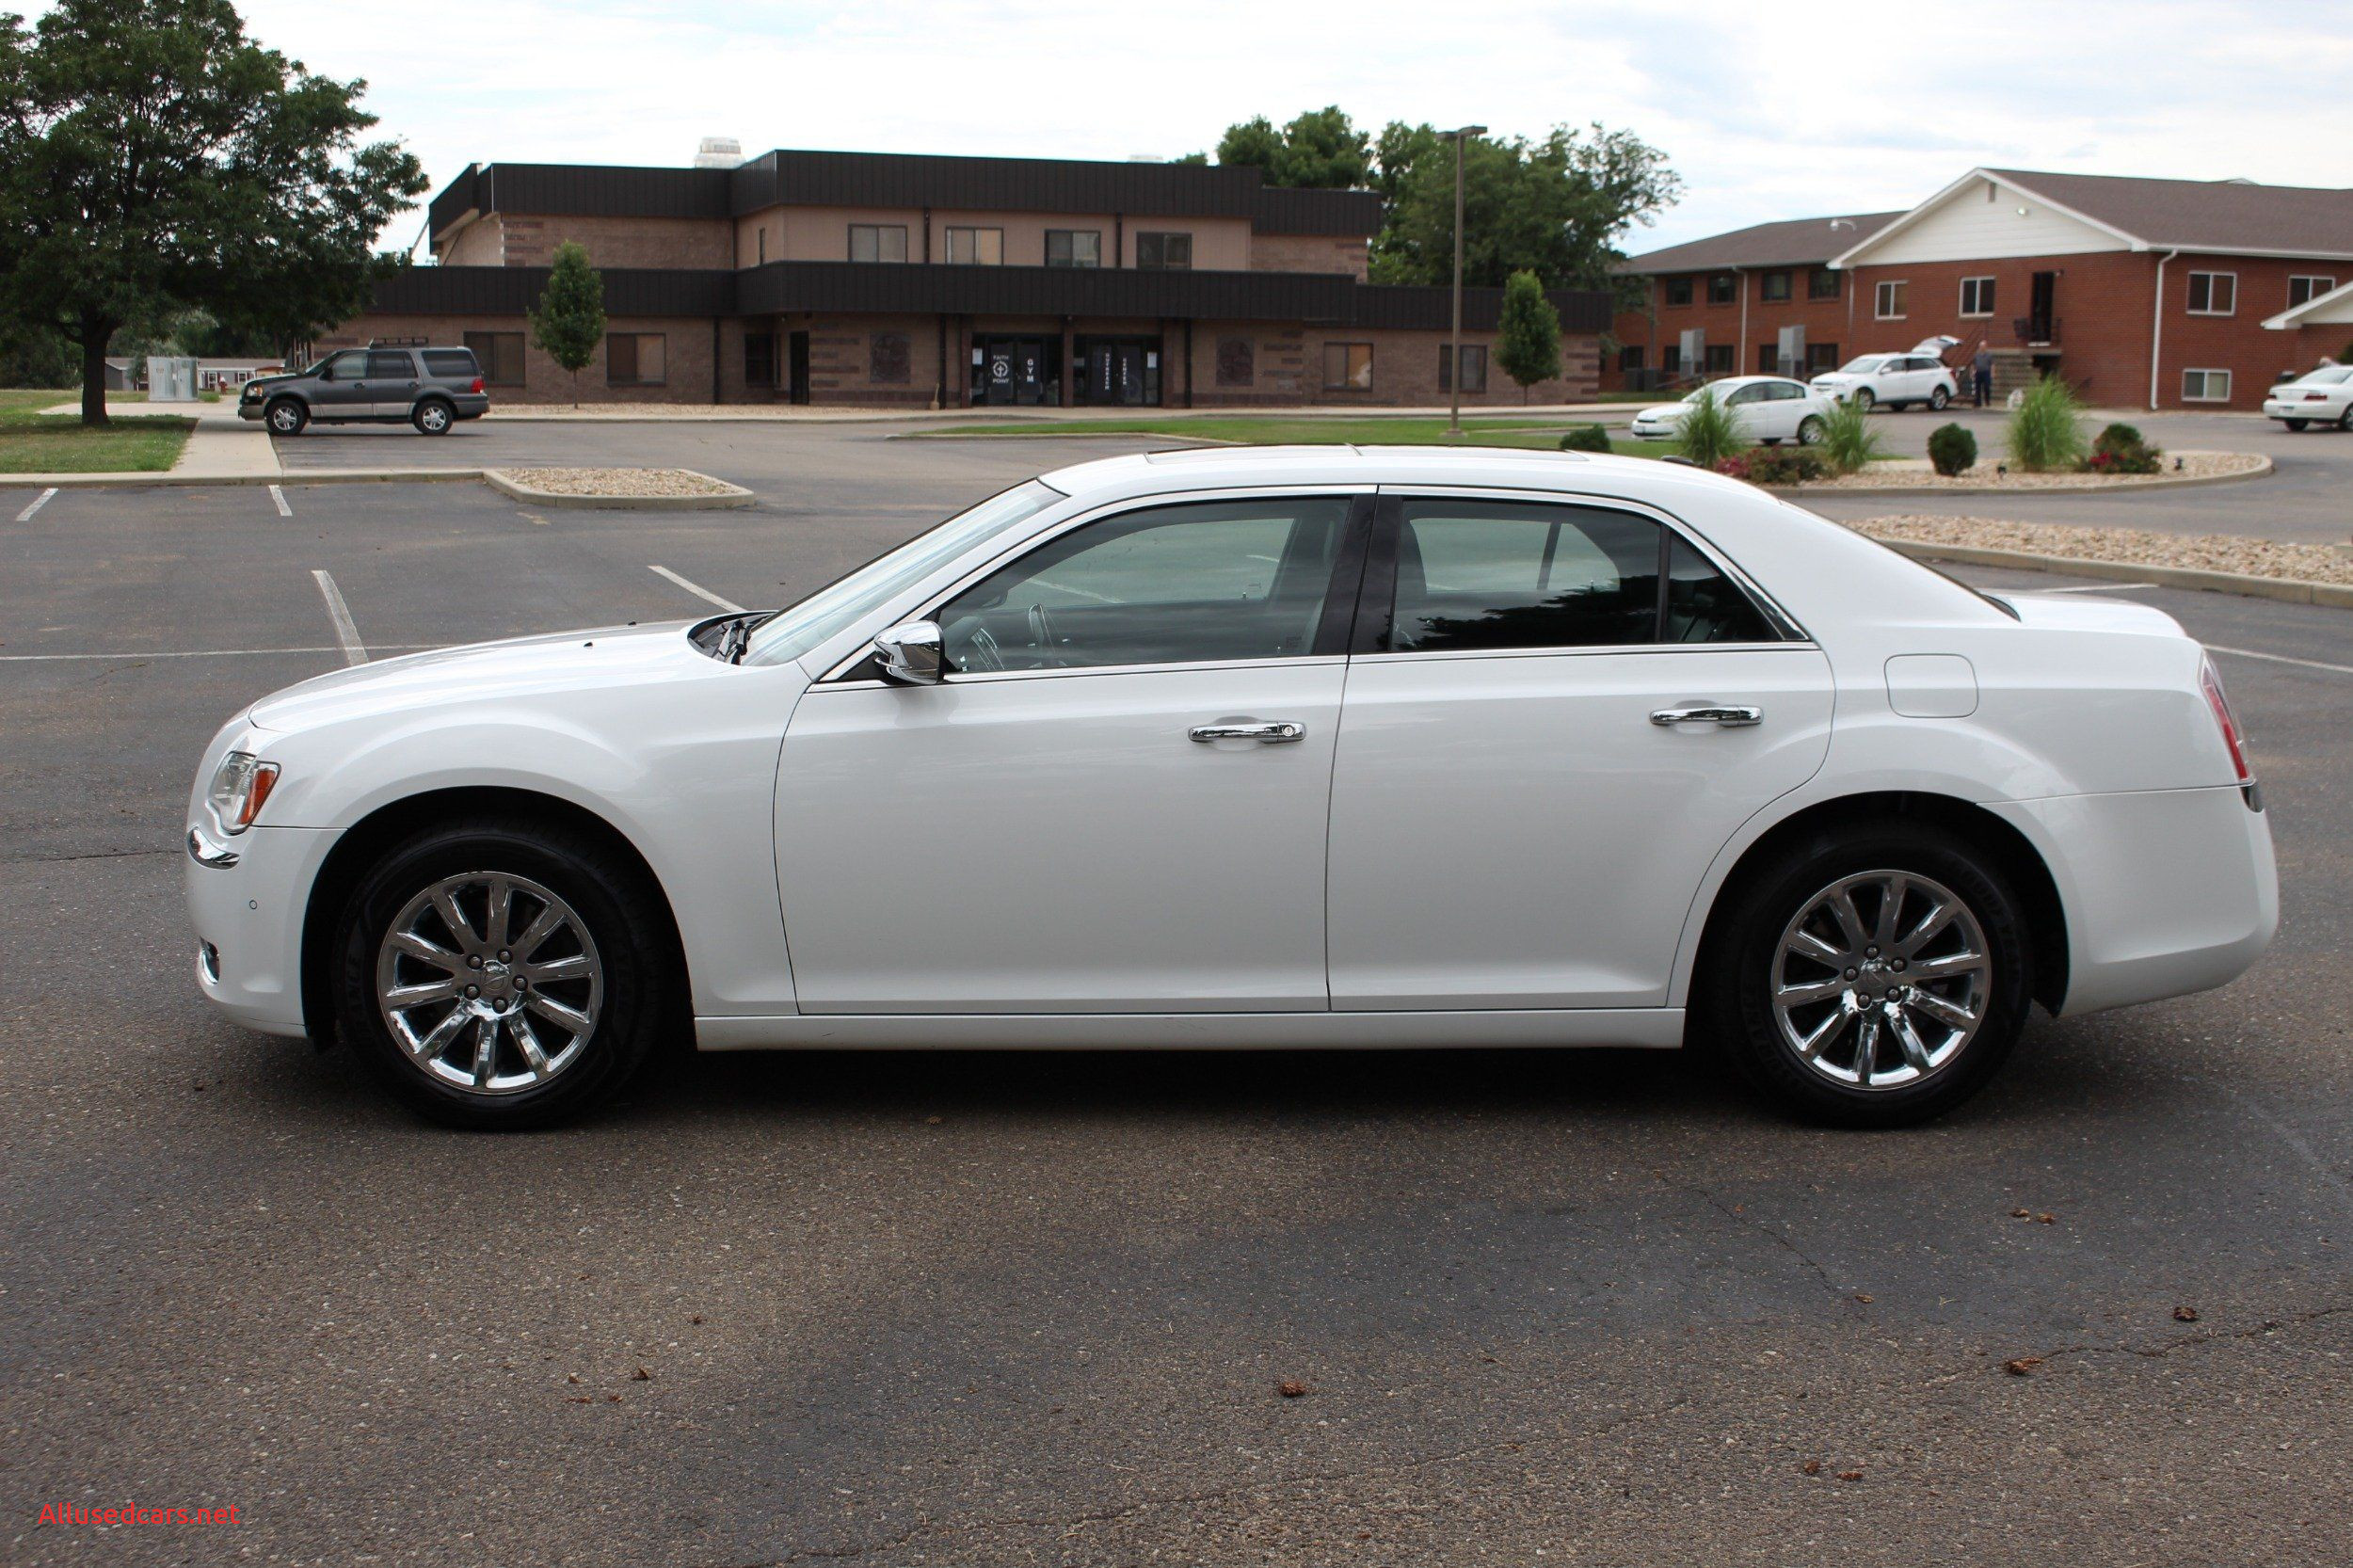 2011 Chrysler 300 Inspirational 2011 Chrysler 300 S